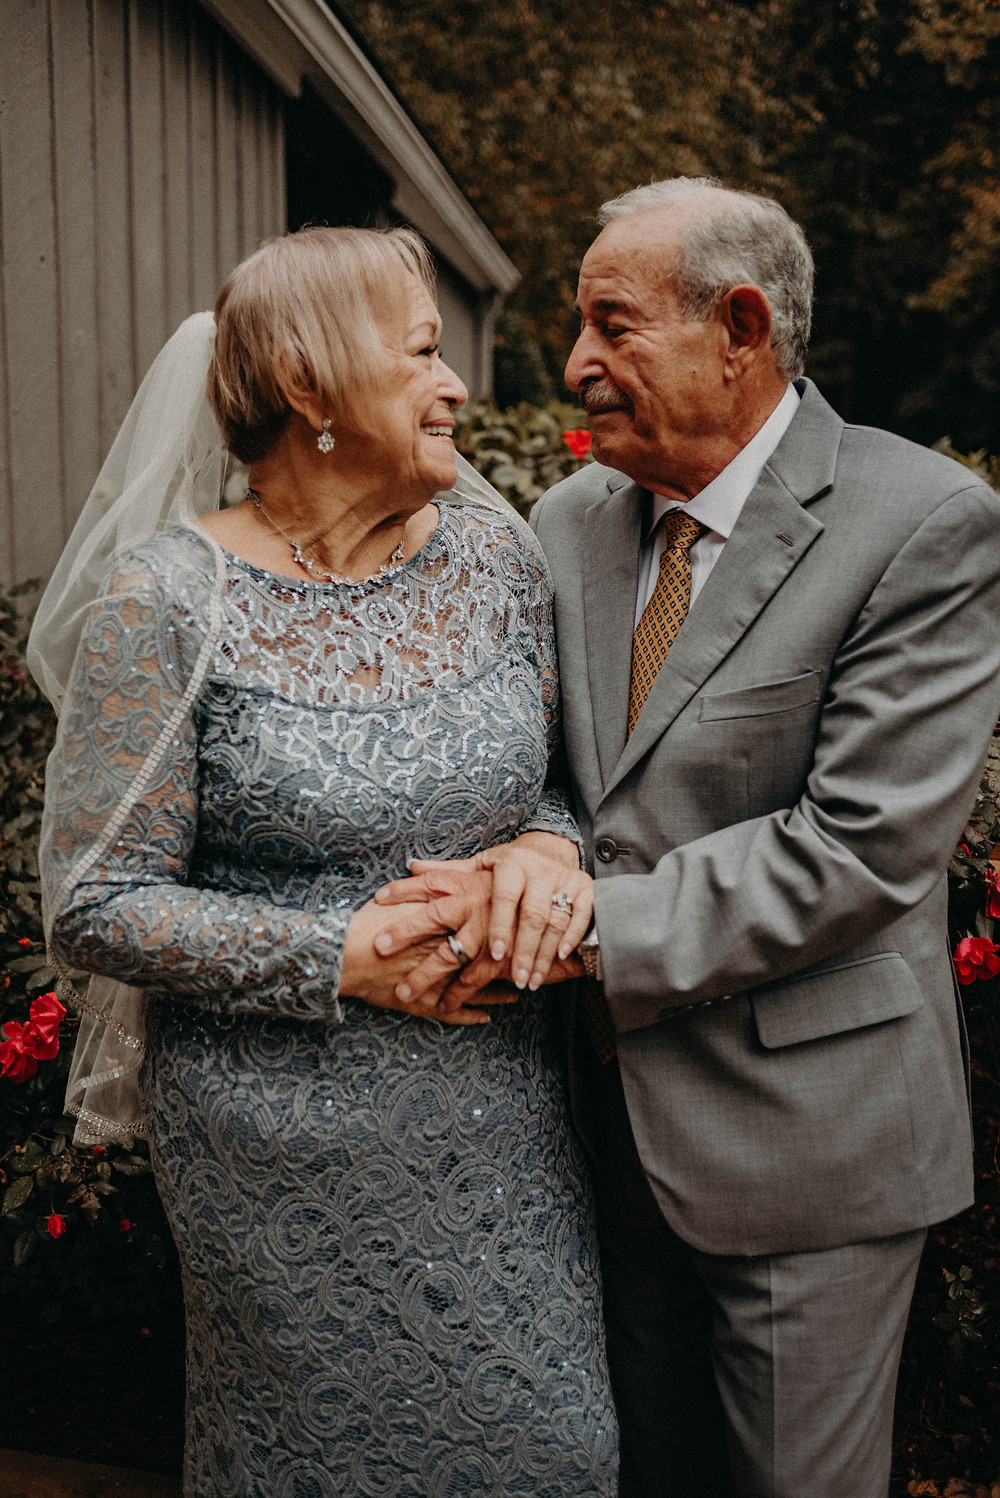 Elderly couple smiling at each other at their wedding